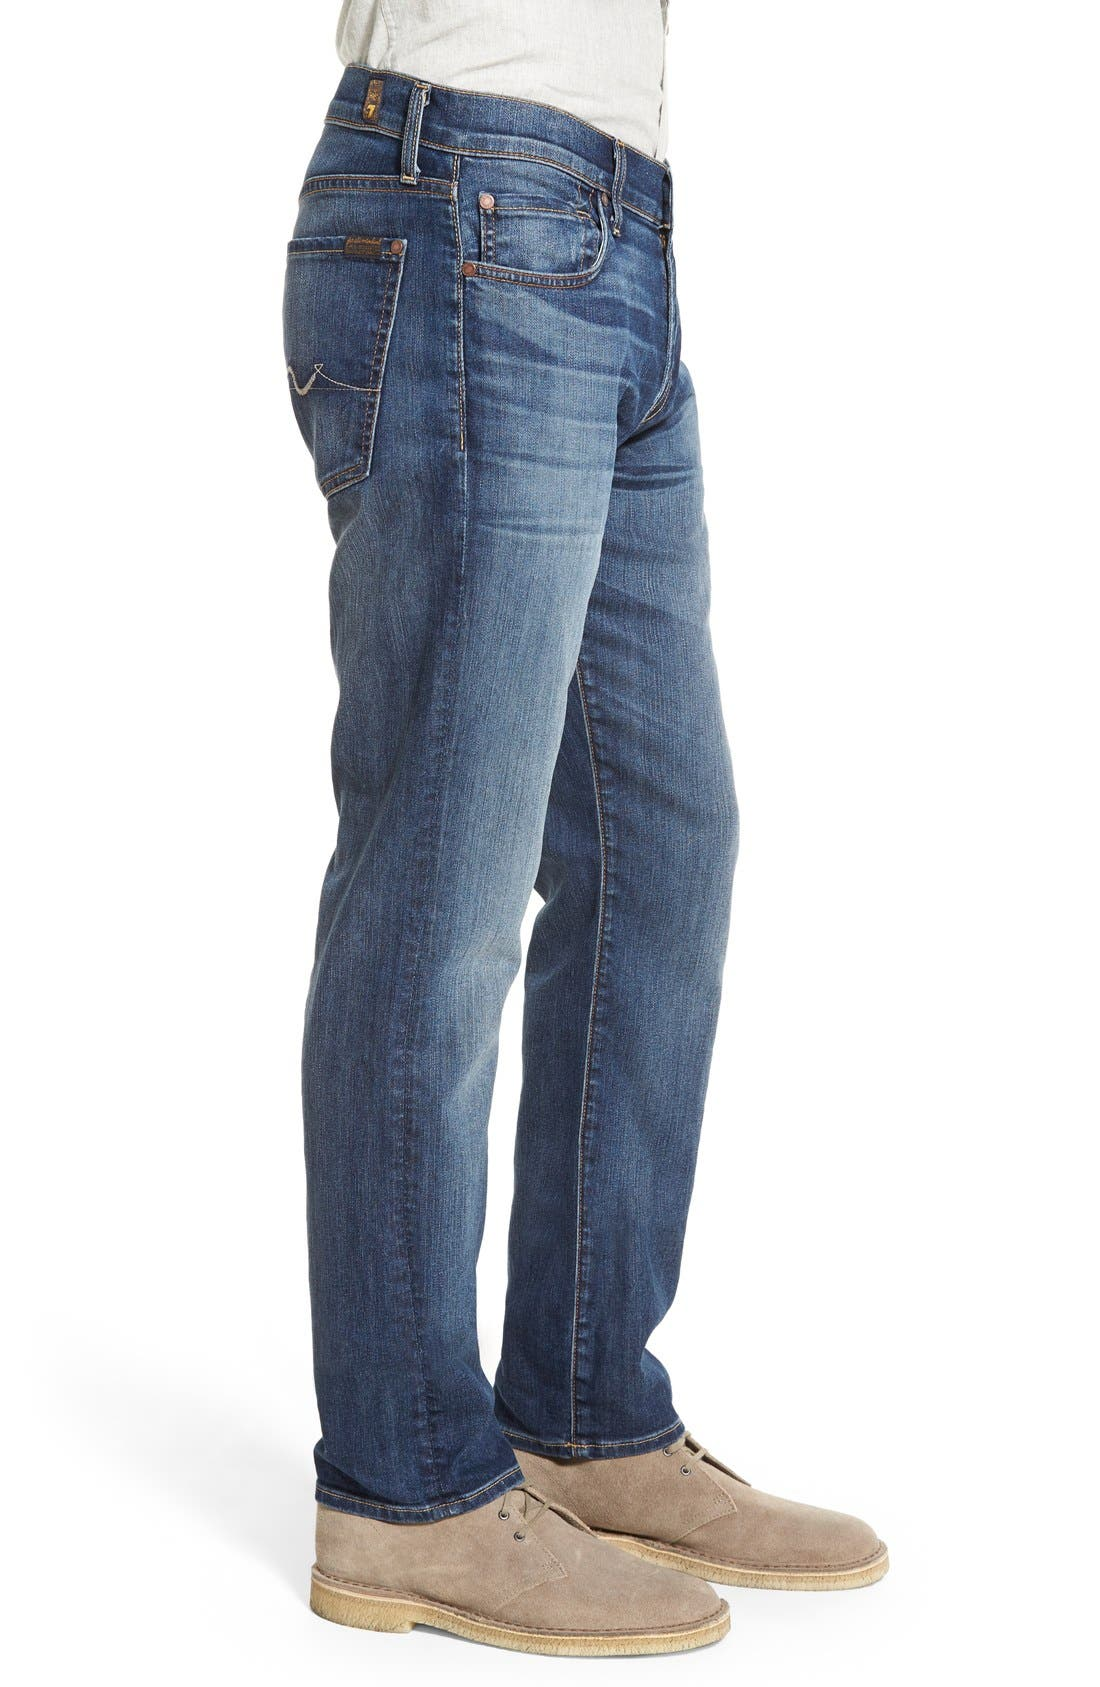 'Slimmy - Luxe Performance' Slim Fit Jeans,                             Alternate thumbnail 3, color,                             AIR WEFT COMMOTION